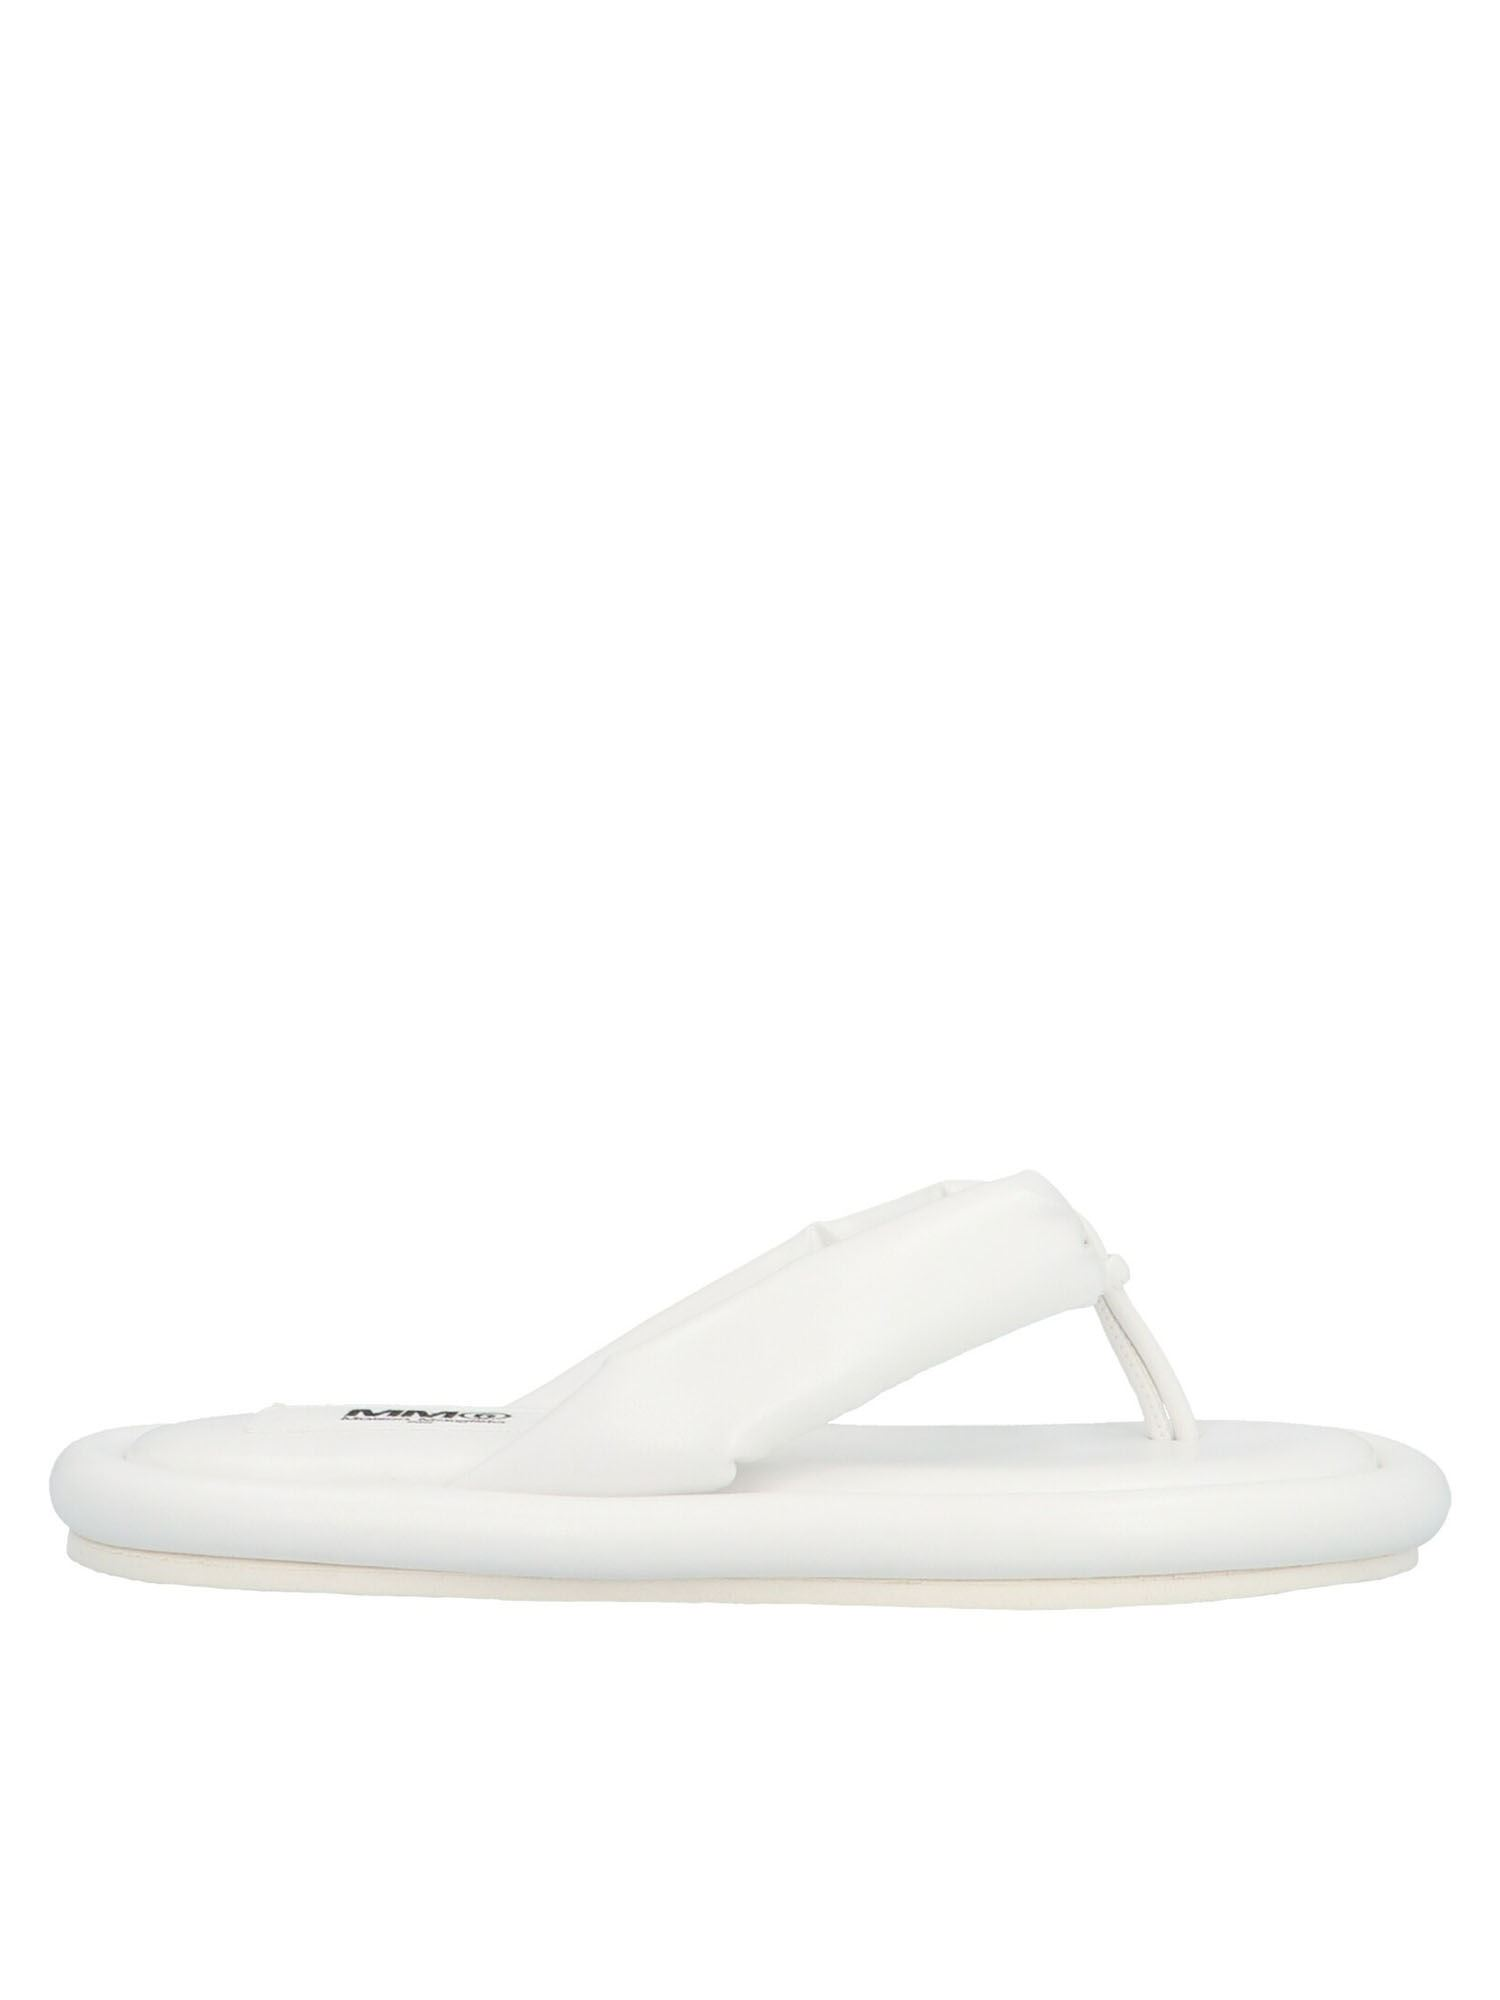 Mm6 Maison Margiela JAPANESE PADDED SANDALS IN WHITE